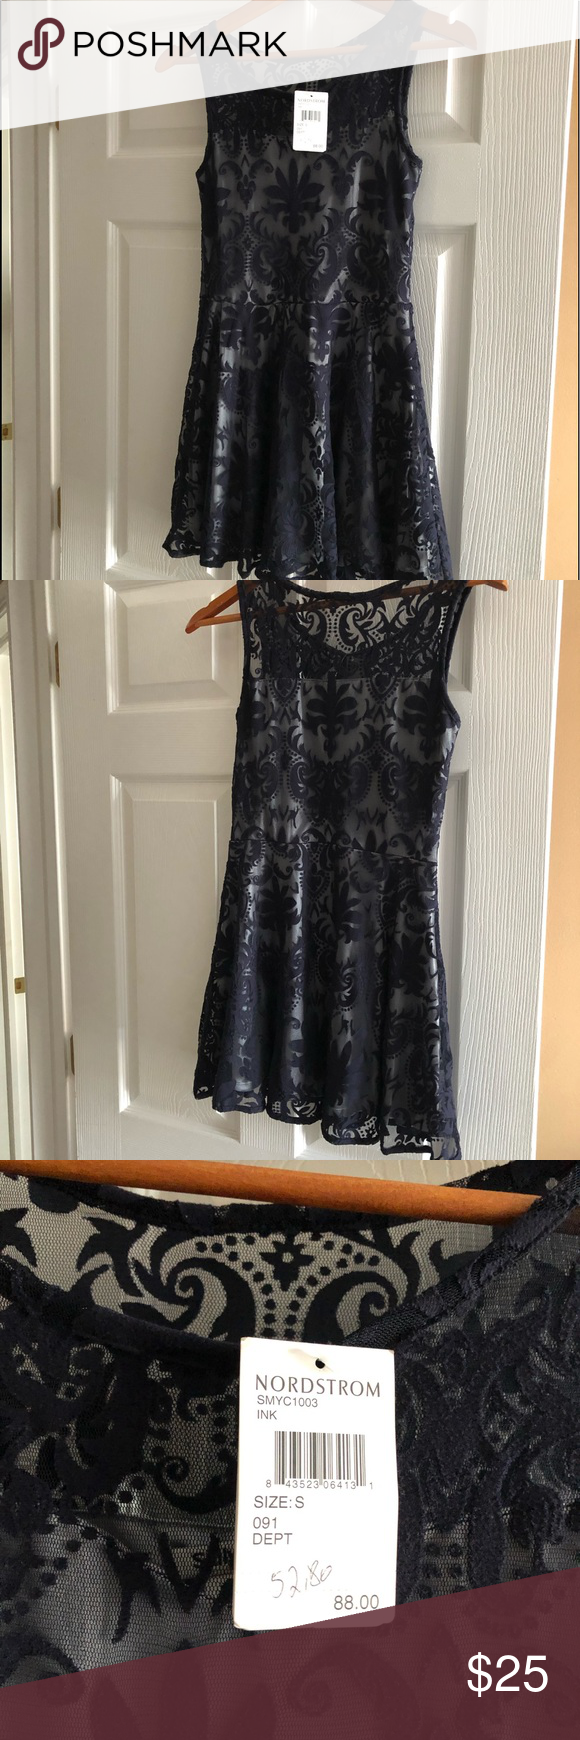 Sally Miller NWT  size S  lace dress. Sally Miller  lace dress size S  new , from Nordstrom  color ink ( very dark navy blue) original price was 88 and from sale 52.80 Sally Miller Dresses Mini #sallymiller Sally Miller NWT  size S  lace dress. Sally Miller  lace dress size S  new , from Nordstrom  color ink ( very dark navy blue) original price was 88 and from sale 52.80 Sally Miller Dresses Mini #sallymiller